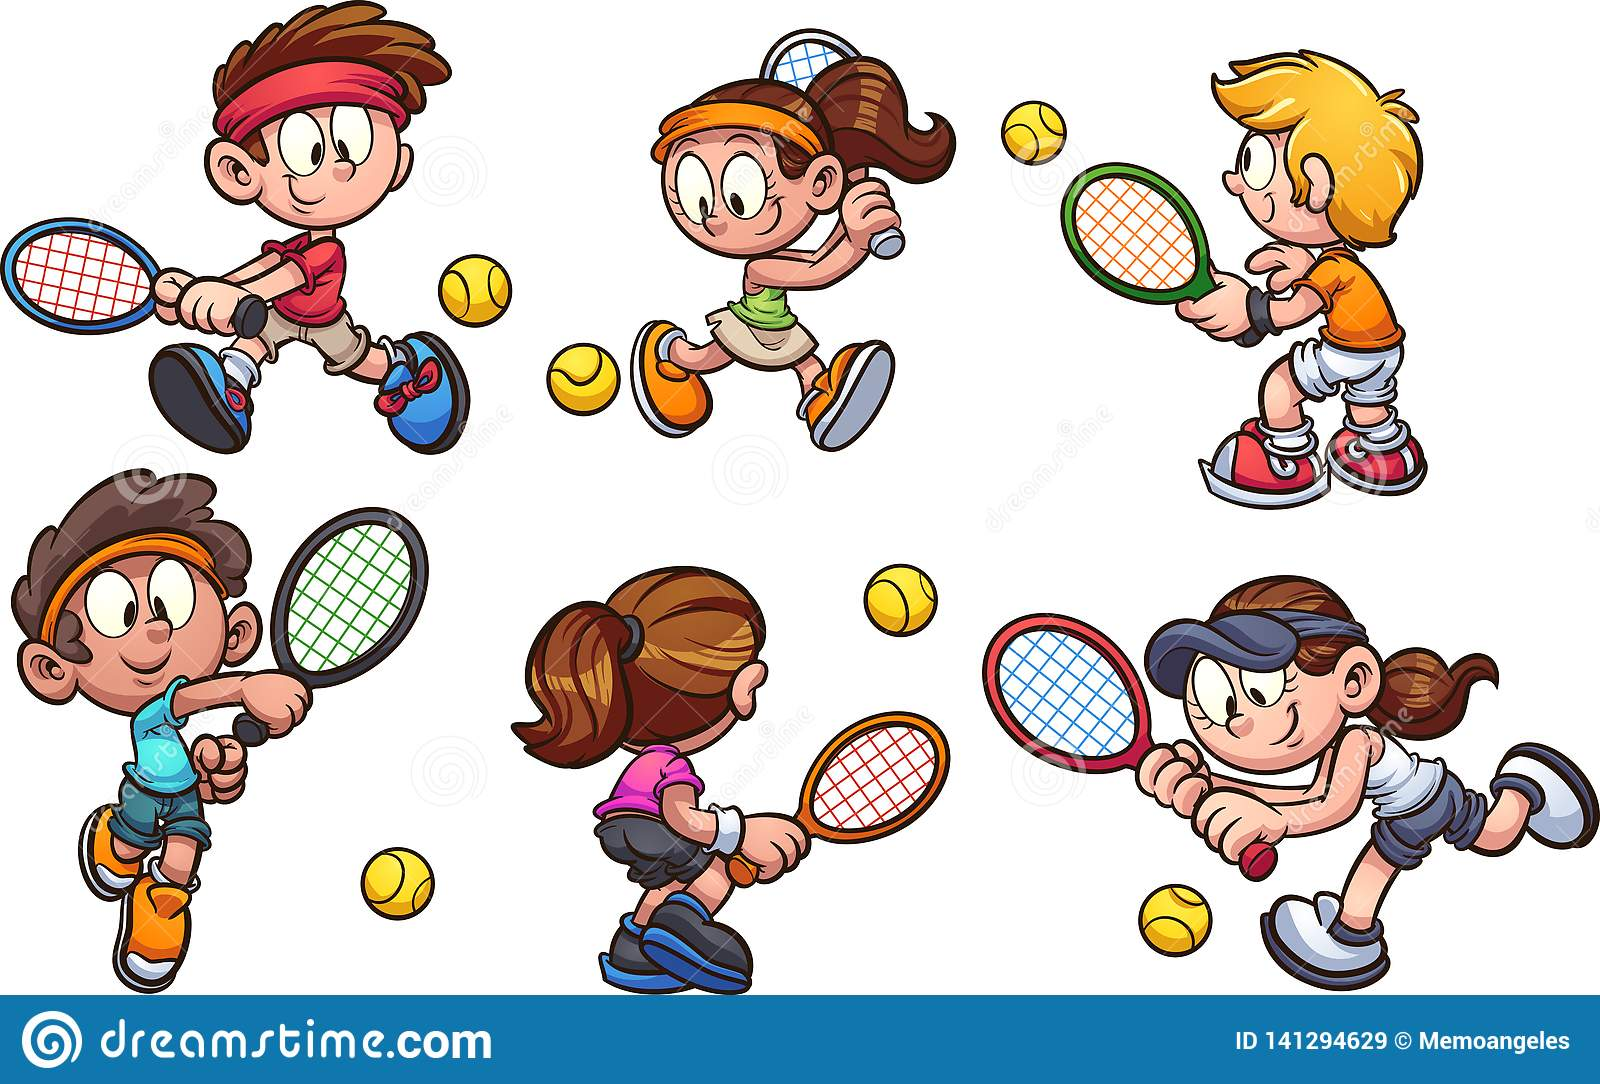 A Group Of Cartoon Kids Playing Tennis Stock Vector - Illustration ...